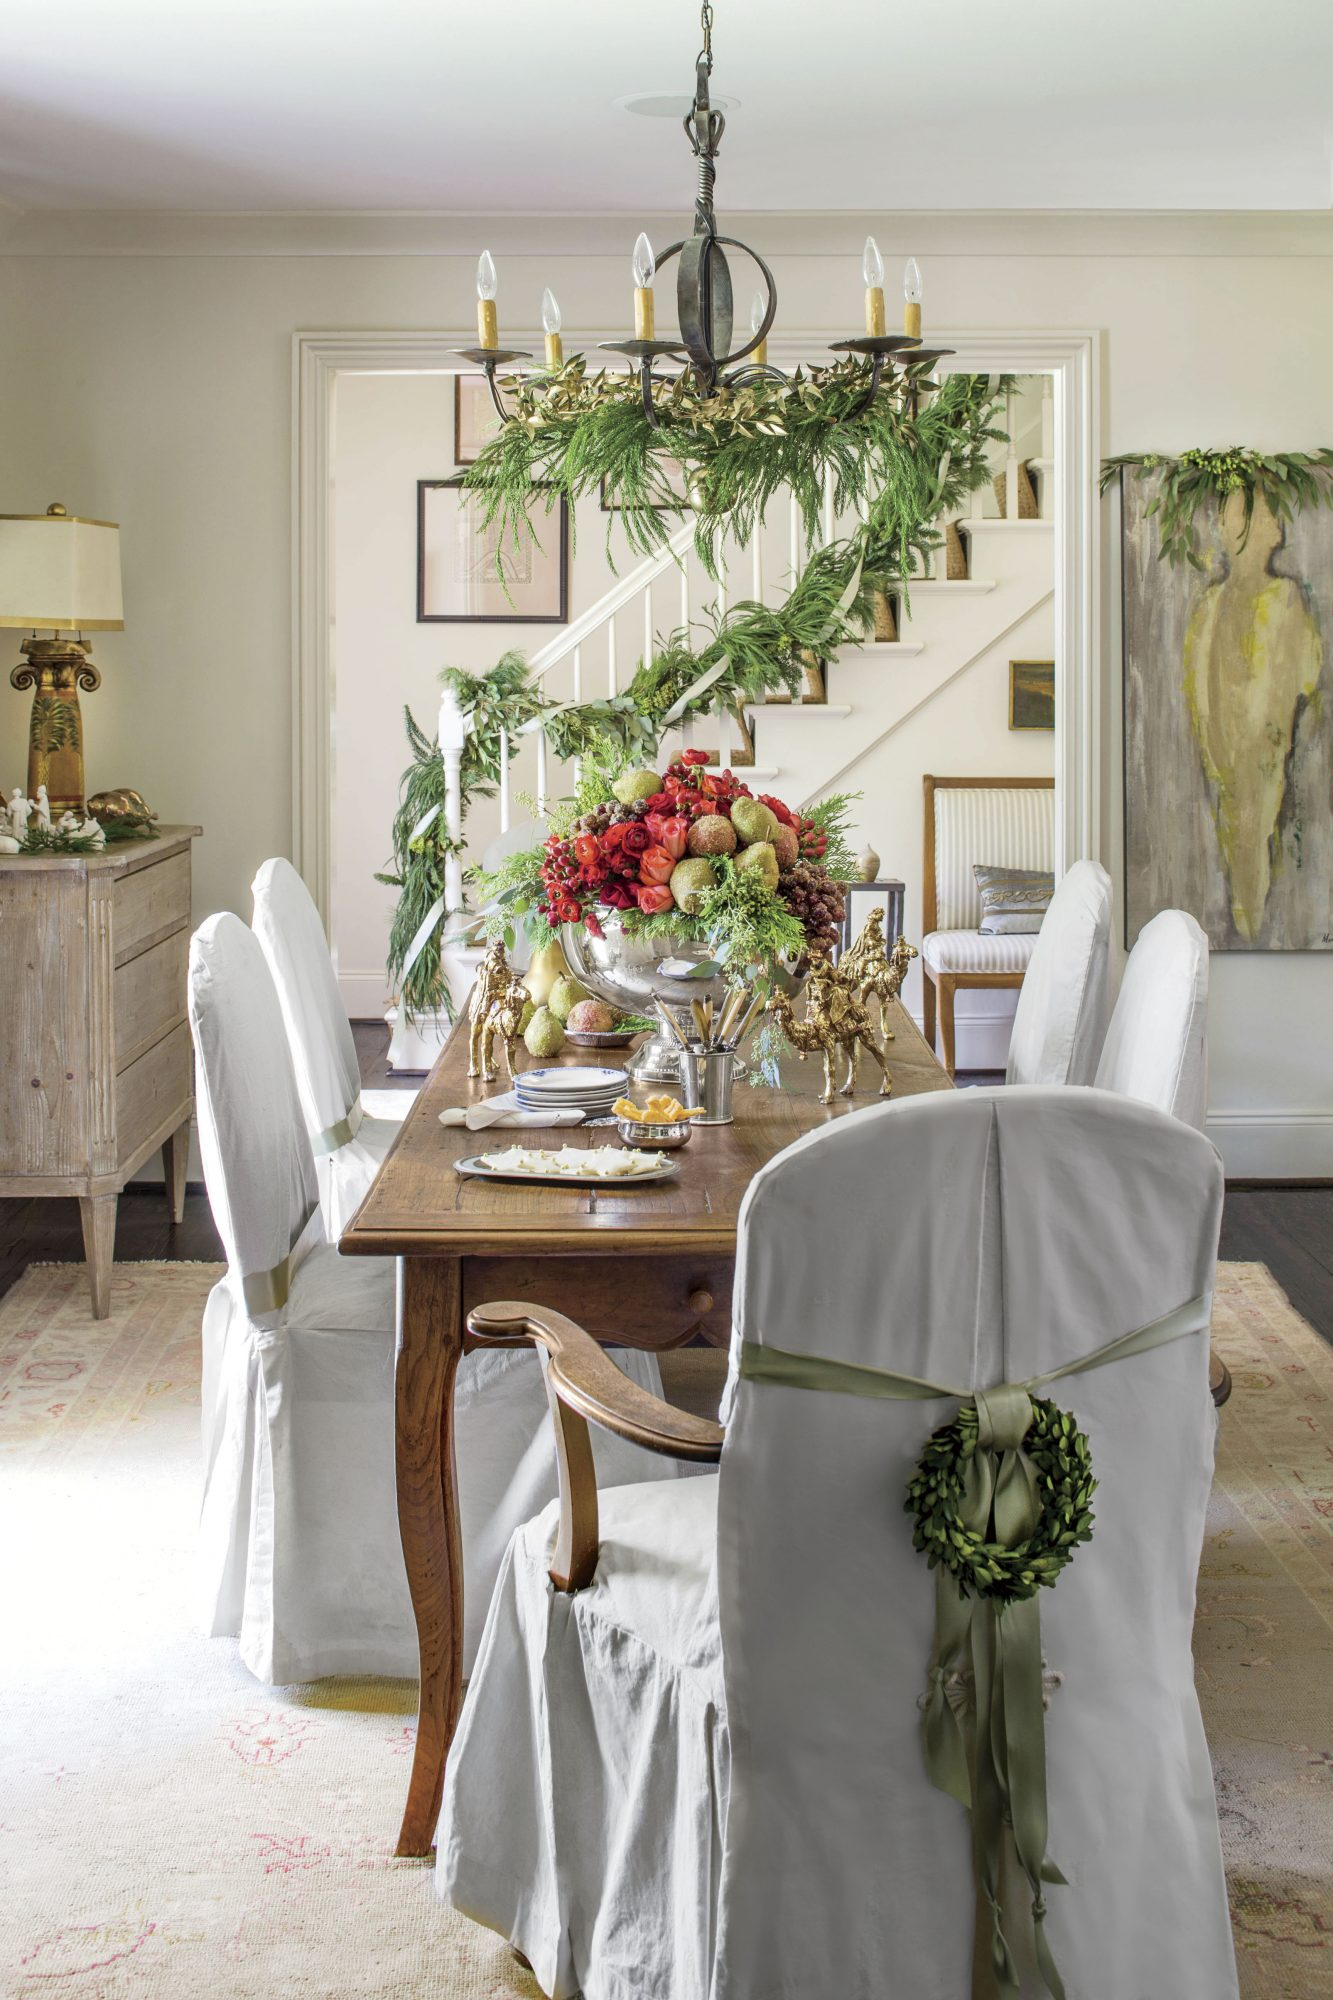 Greenery Display in Iris Thorpe's Dining Room